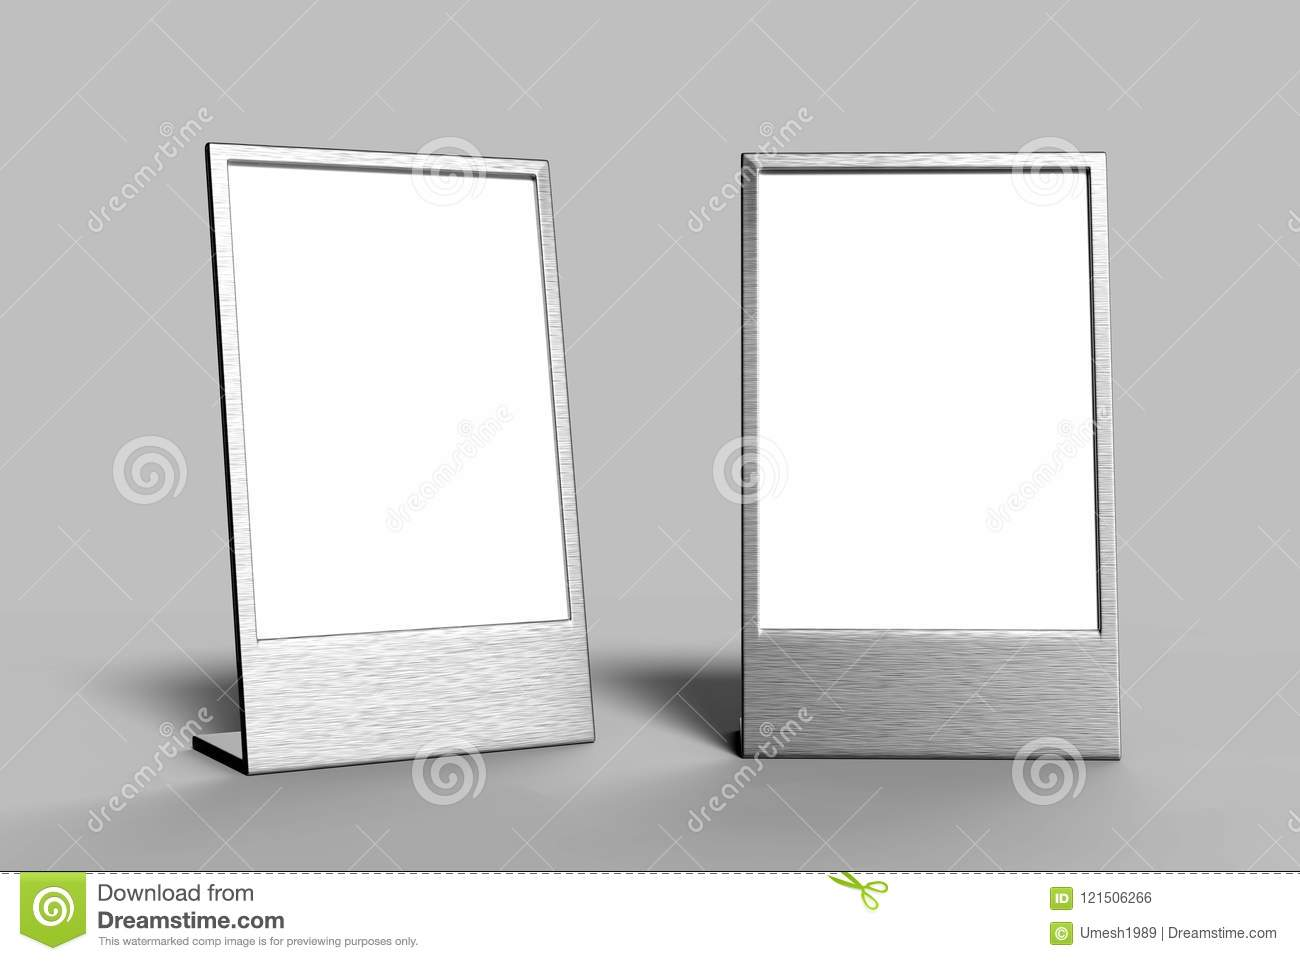 Picture of: Side Loading Slide In Metal Frame Table Top Counter Blank White 3d Render Illustration Stock Illustration Illustration Of Empty Display 121506266